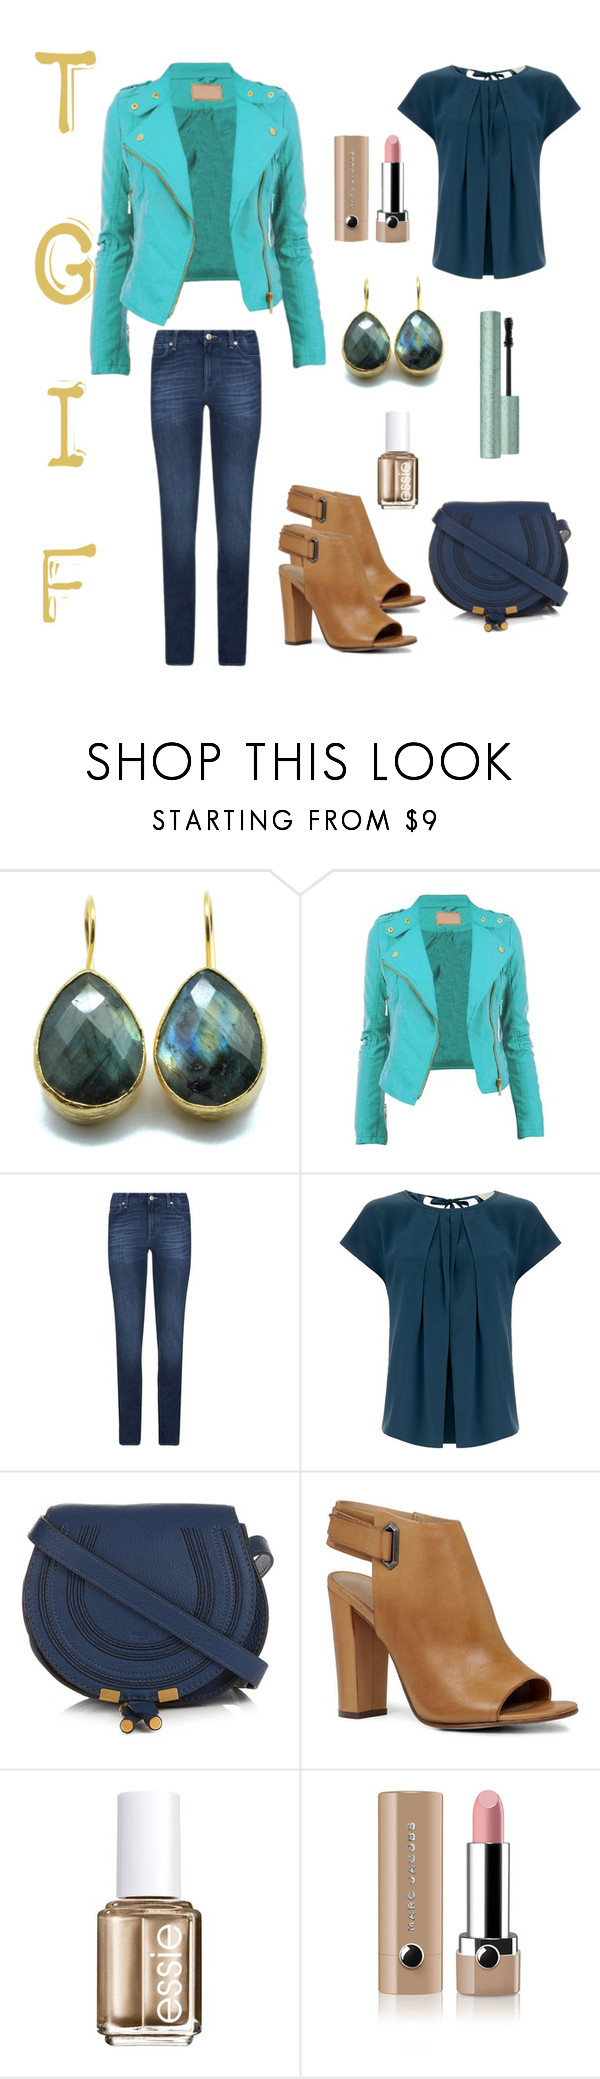 """""""#TGIF"""" by irene-ireen ❤ liked on Polyvore featuring 7 For All Mankind, Goat, Chloé, ALDO, Essie, Marc Jacobs, casual, booties, suede and friday"""